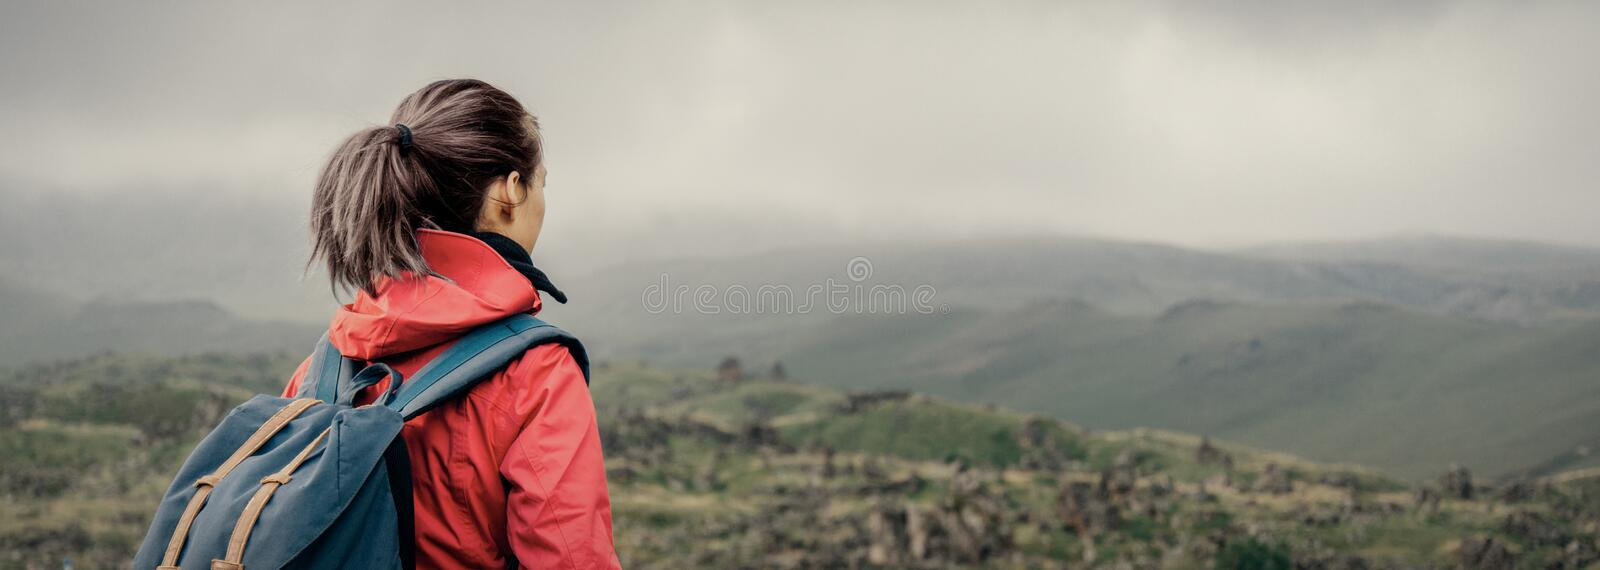 Explorer girl walking in the mountains. royalty free stock images